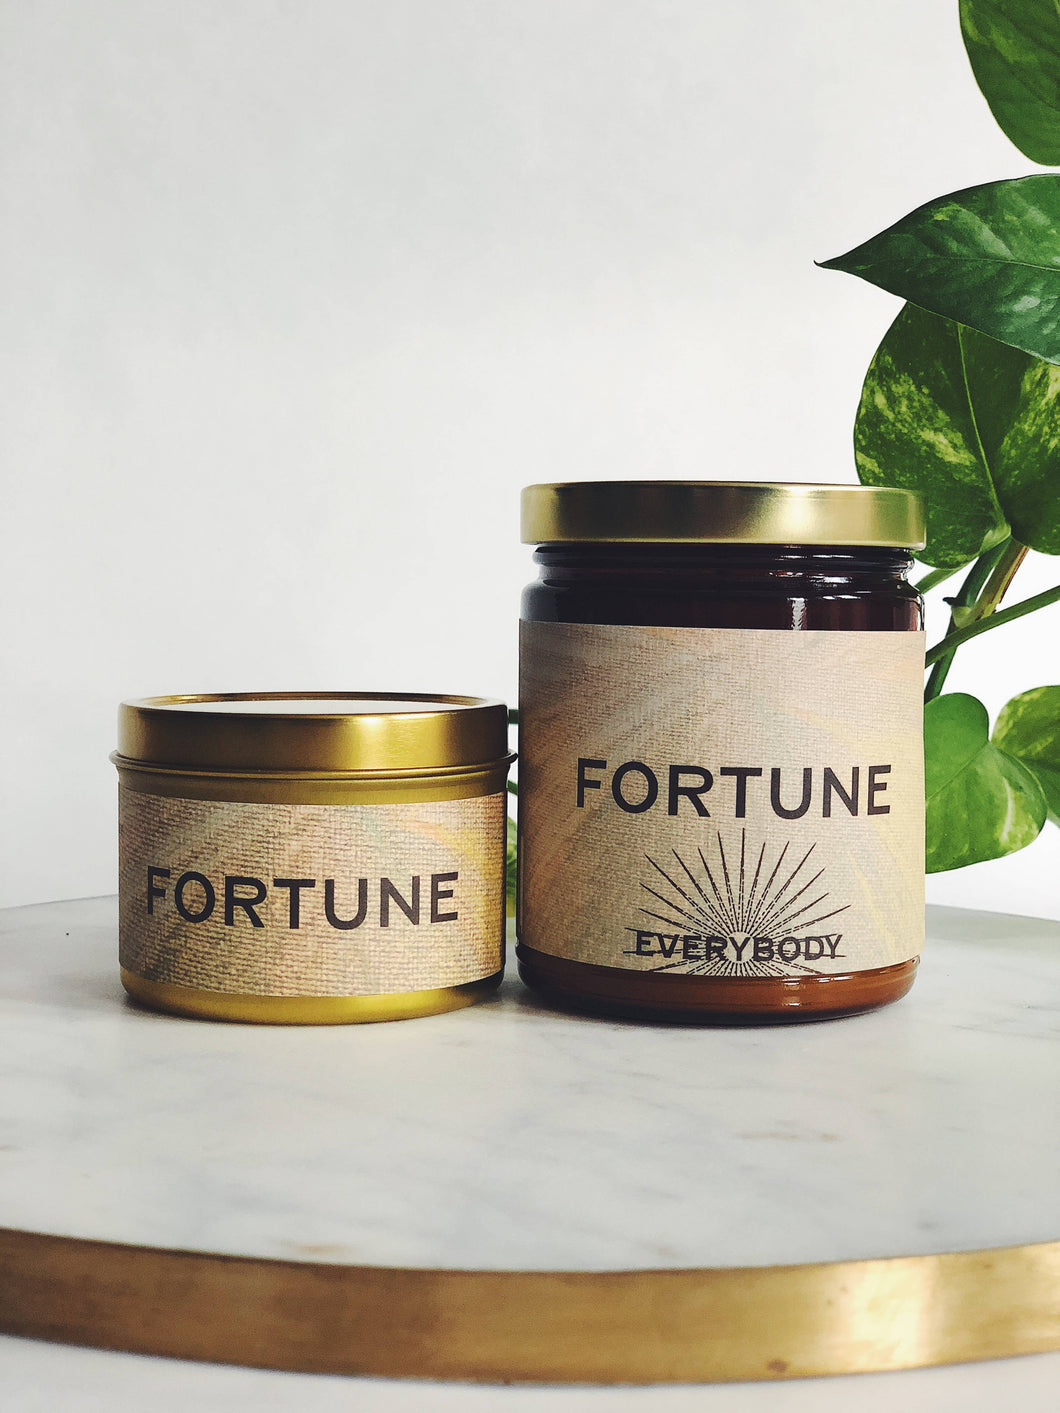 Fortune Candle, 6 oz